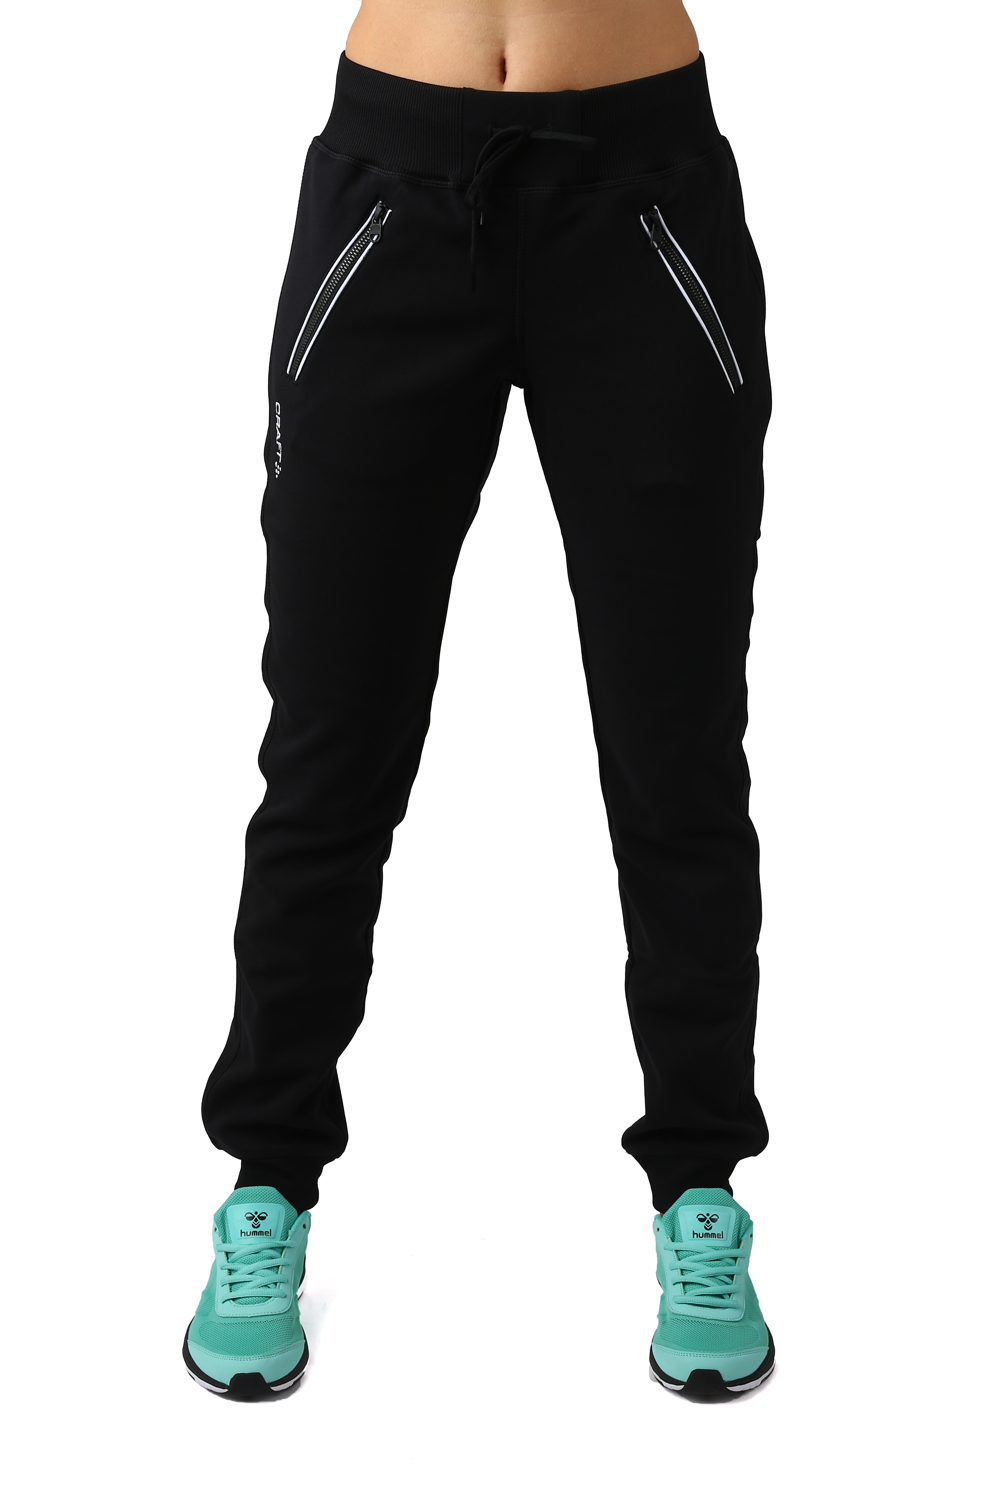 Motehus AS Craft In The Zone Sweatpants W Black